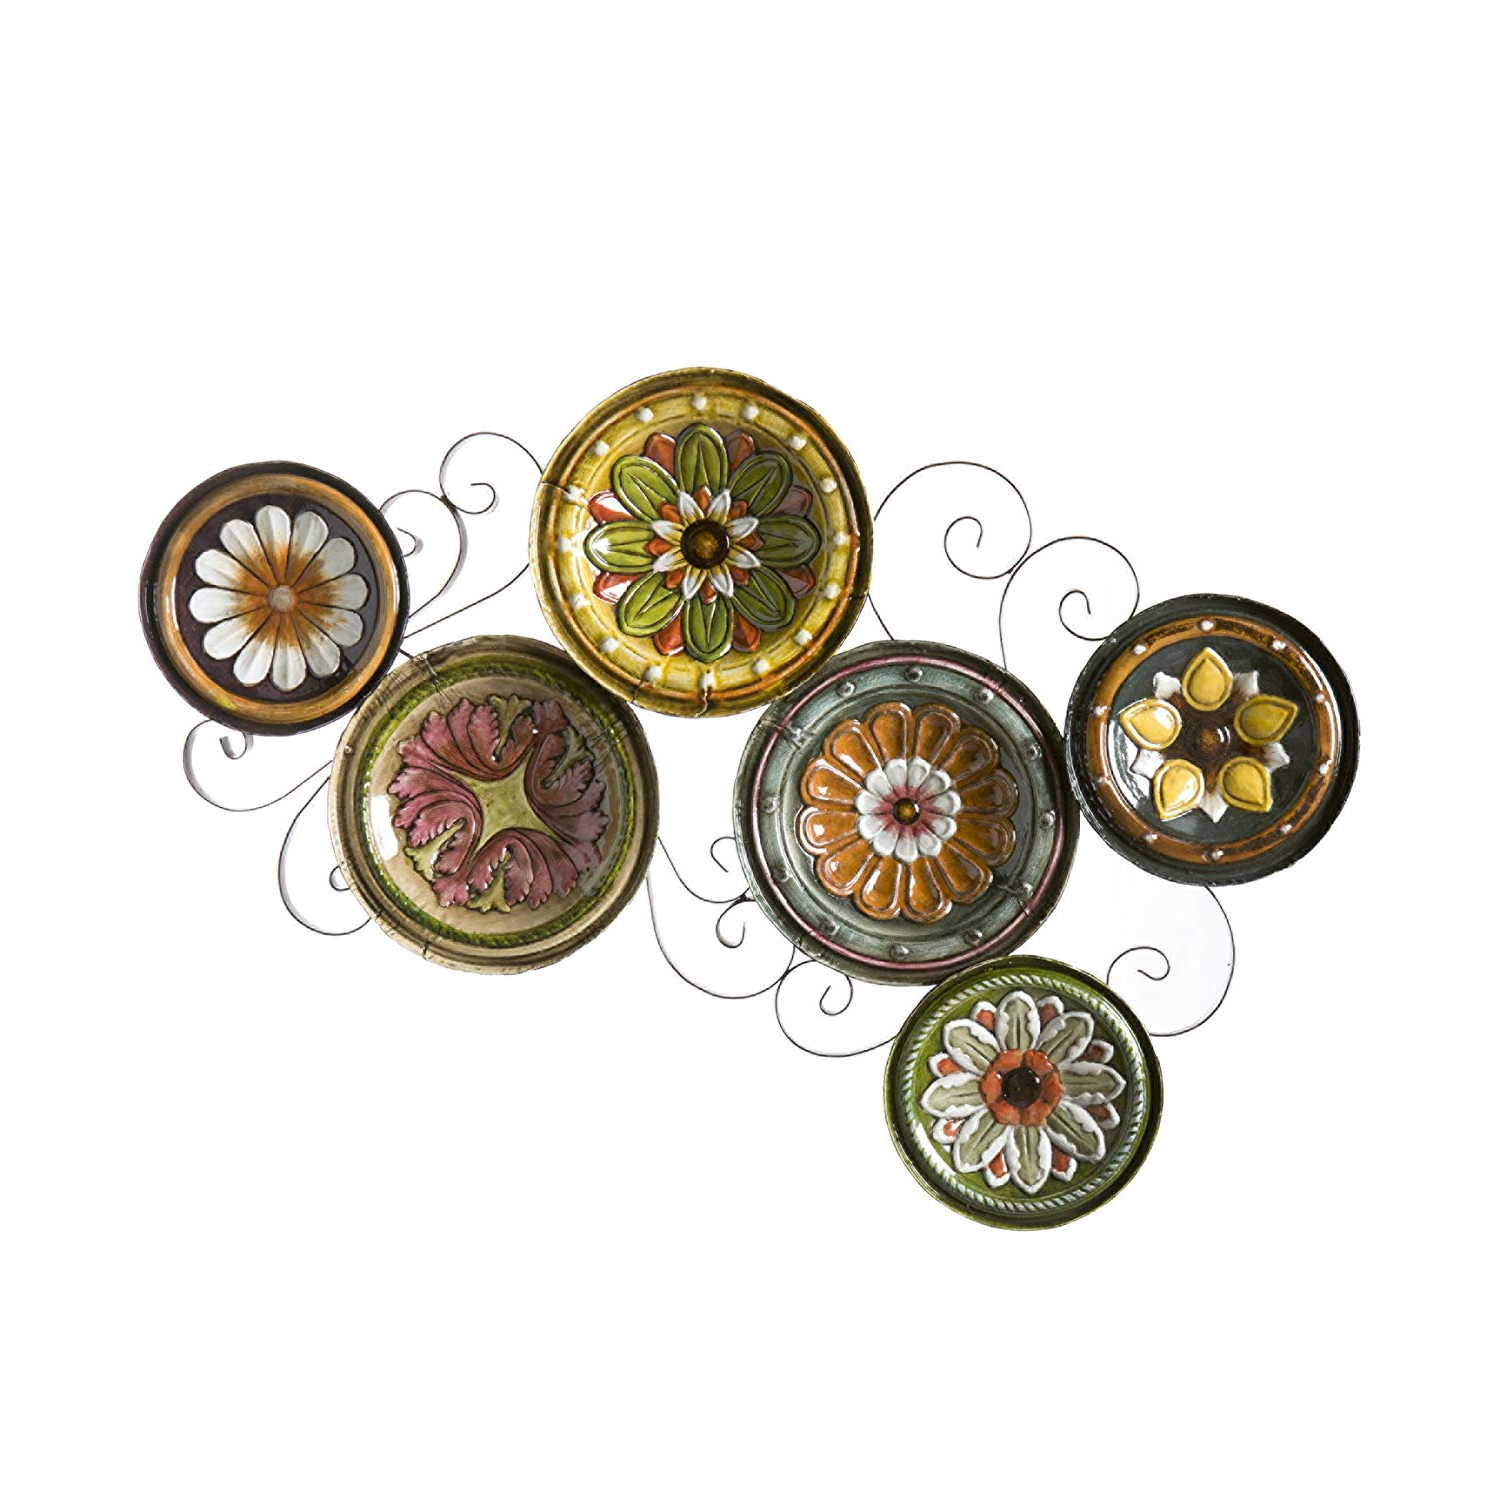 Most Current Amazon: Southern Enterprises Scattered Italian Plates Wall Art In Multi Plates Wall Decor (Gallery 5 of 20)